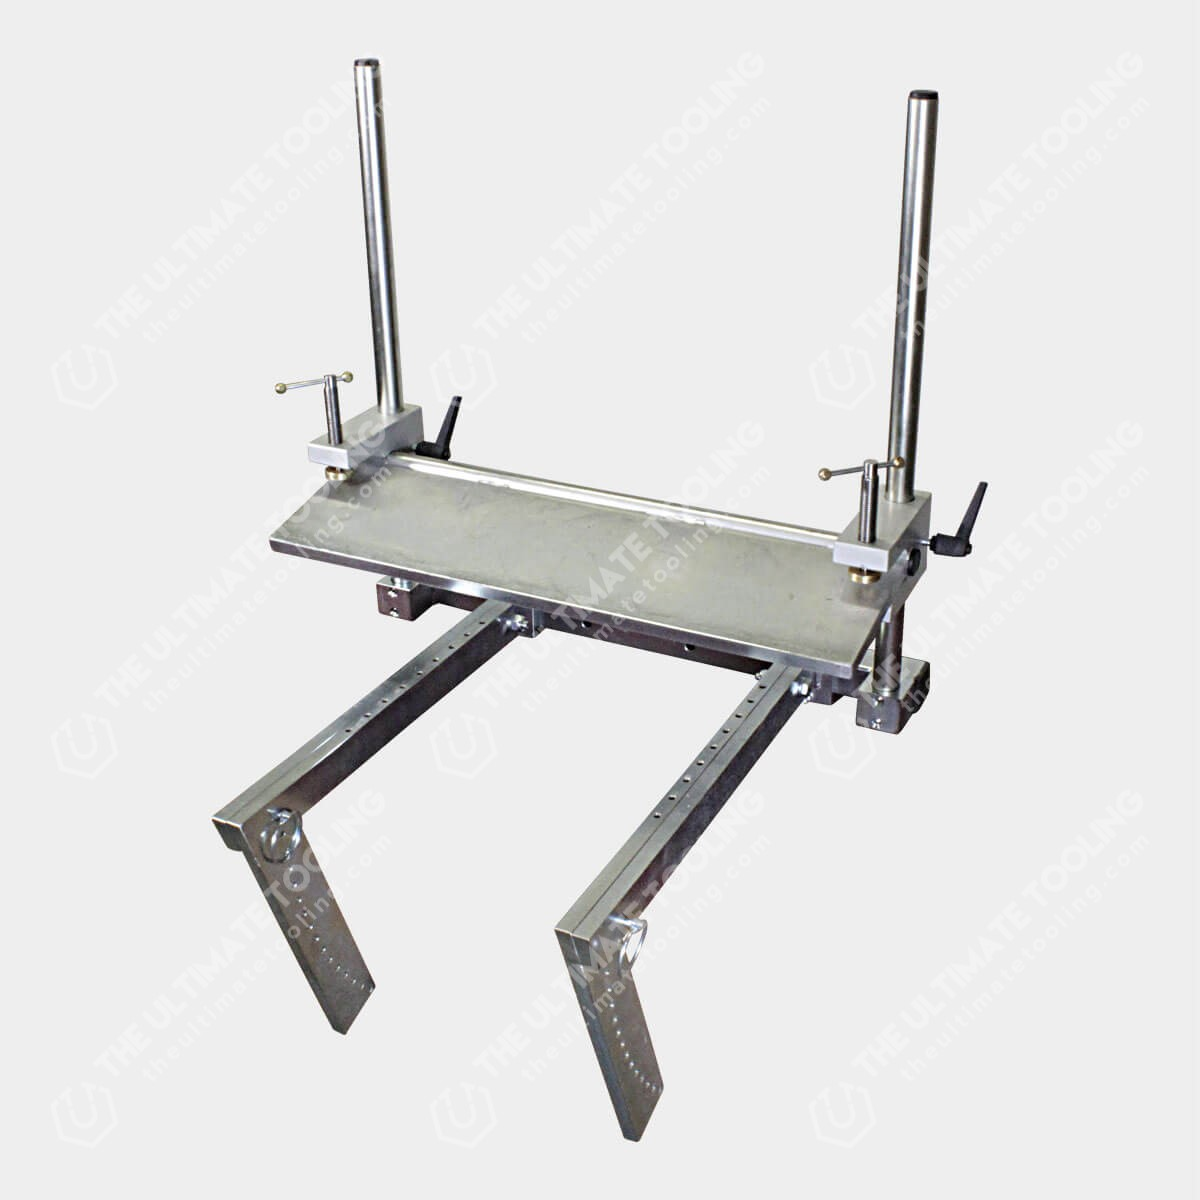 FM1 Manual Valve Seat Machine wall mounting support